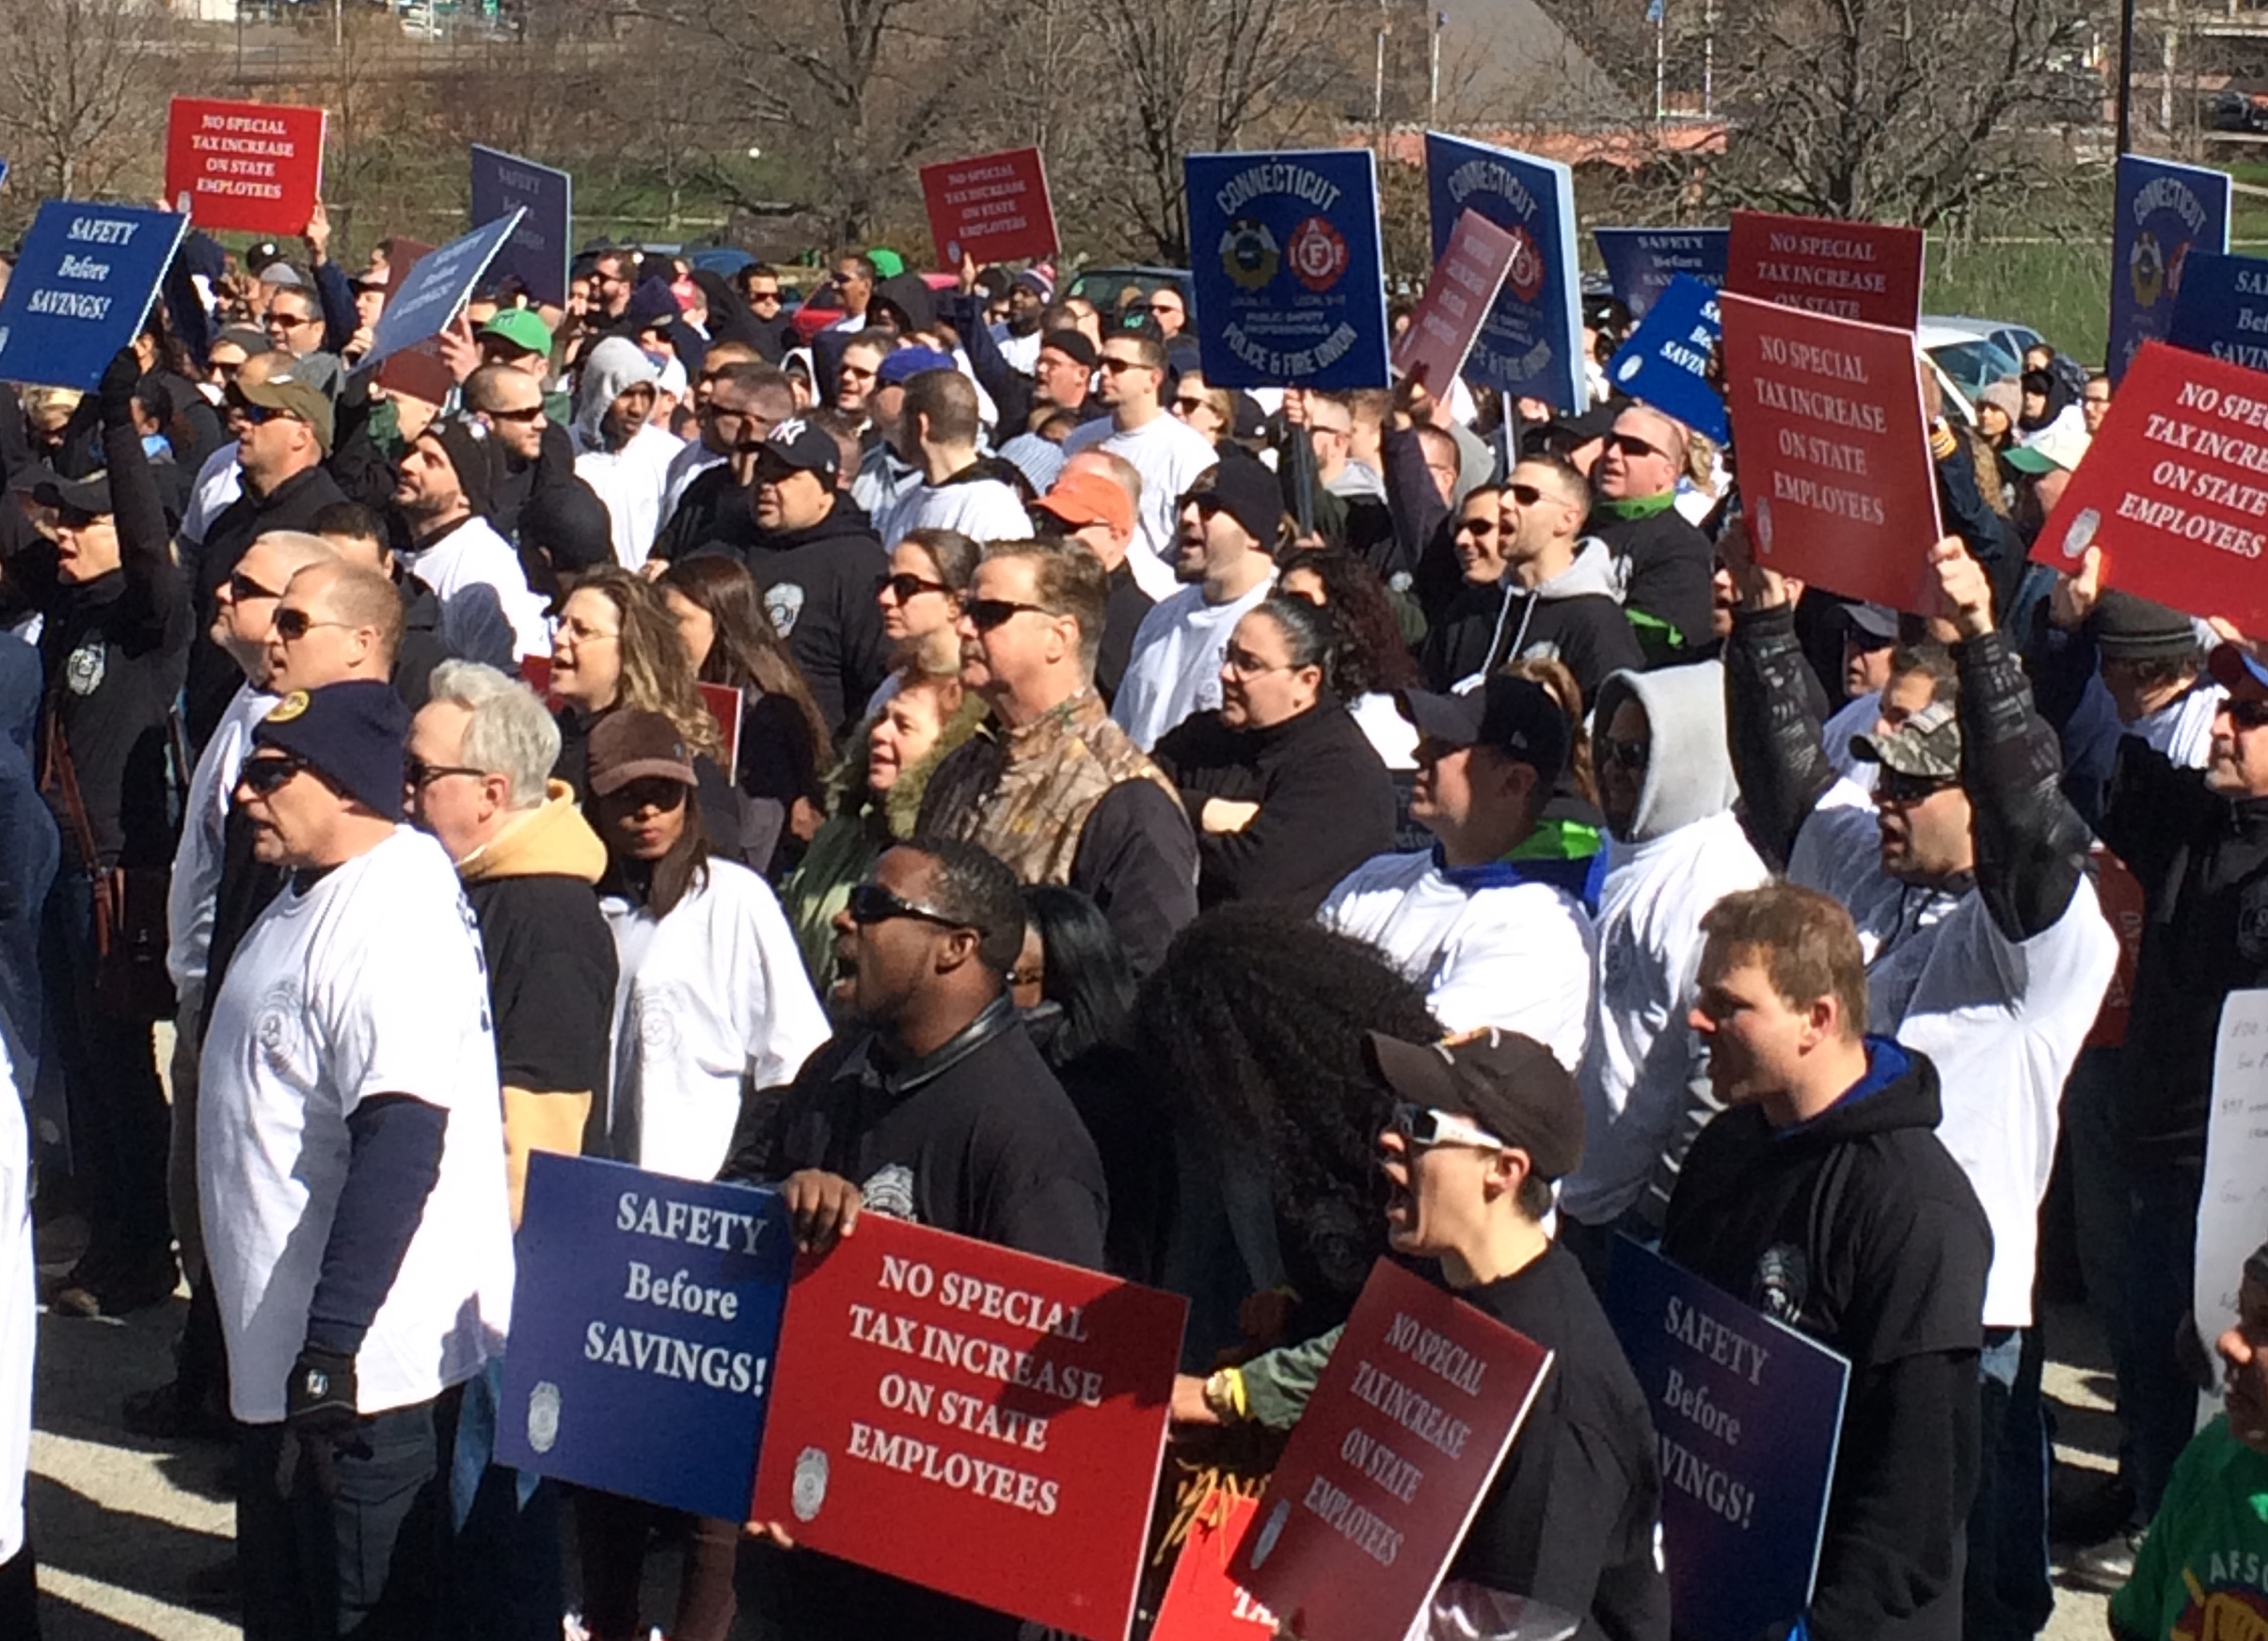 Hundreds of state employees demand no layoffs or concessions